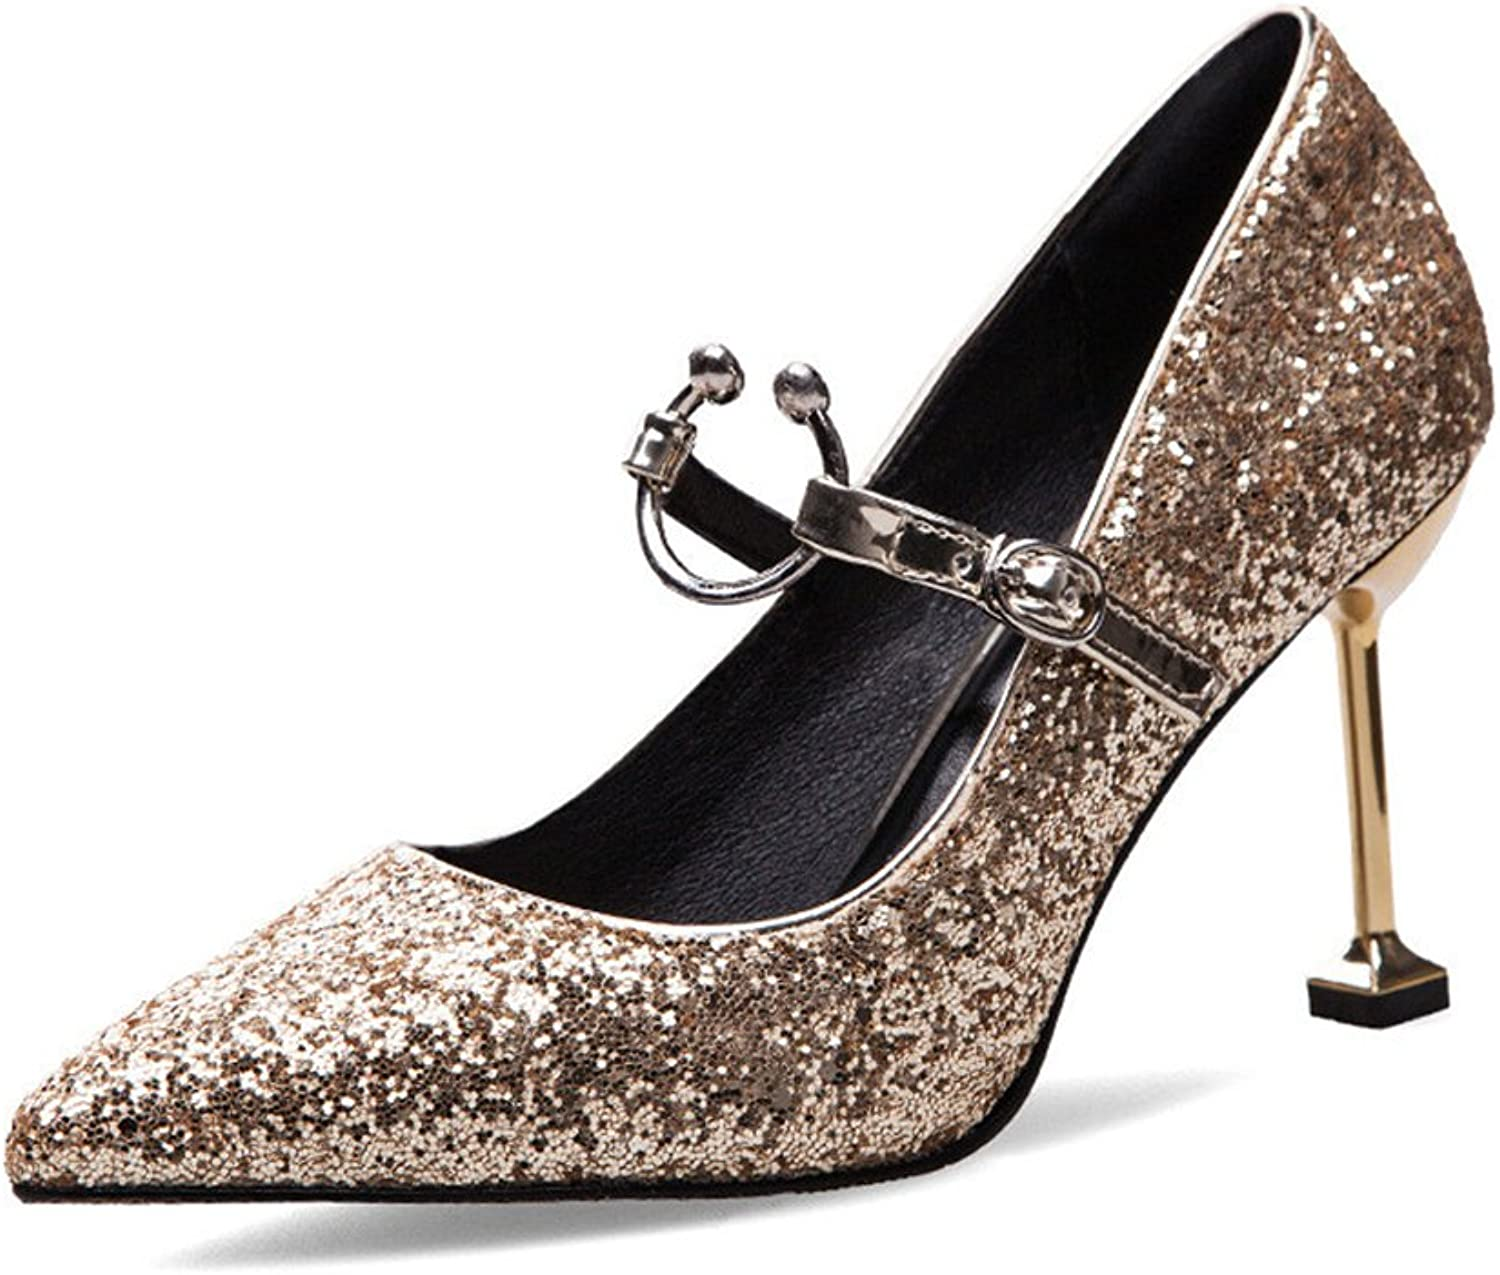 TUYPSHOES Womens Pointed Toe High Heel Pumps Slip-On Sequins Pumps Wedding Party Pumps shoes